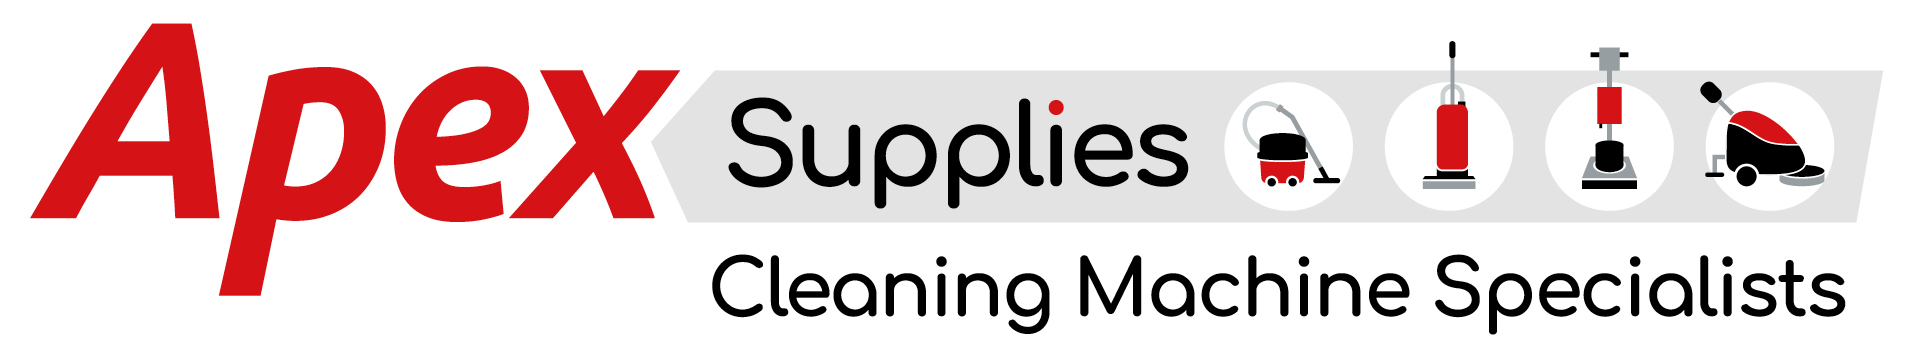 Apex Supplies - Cleaning Machine Specialists